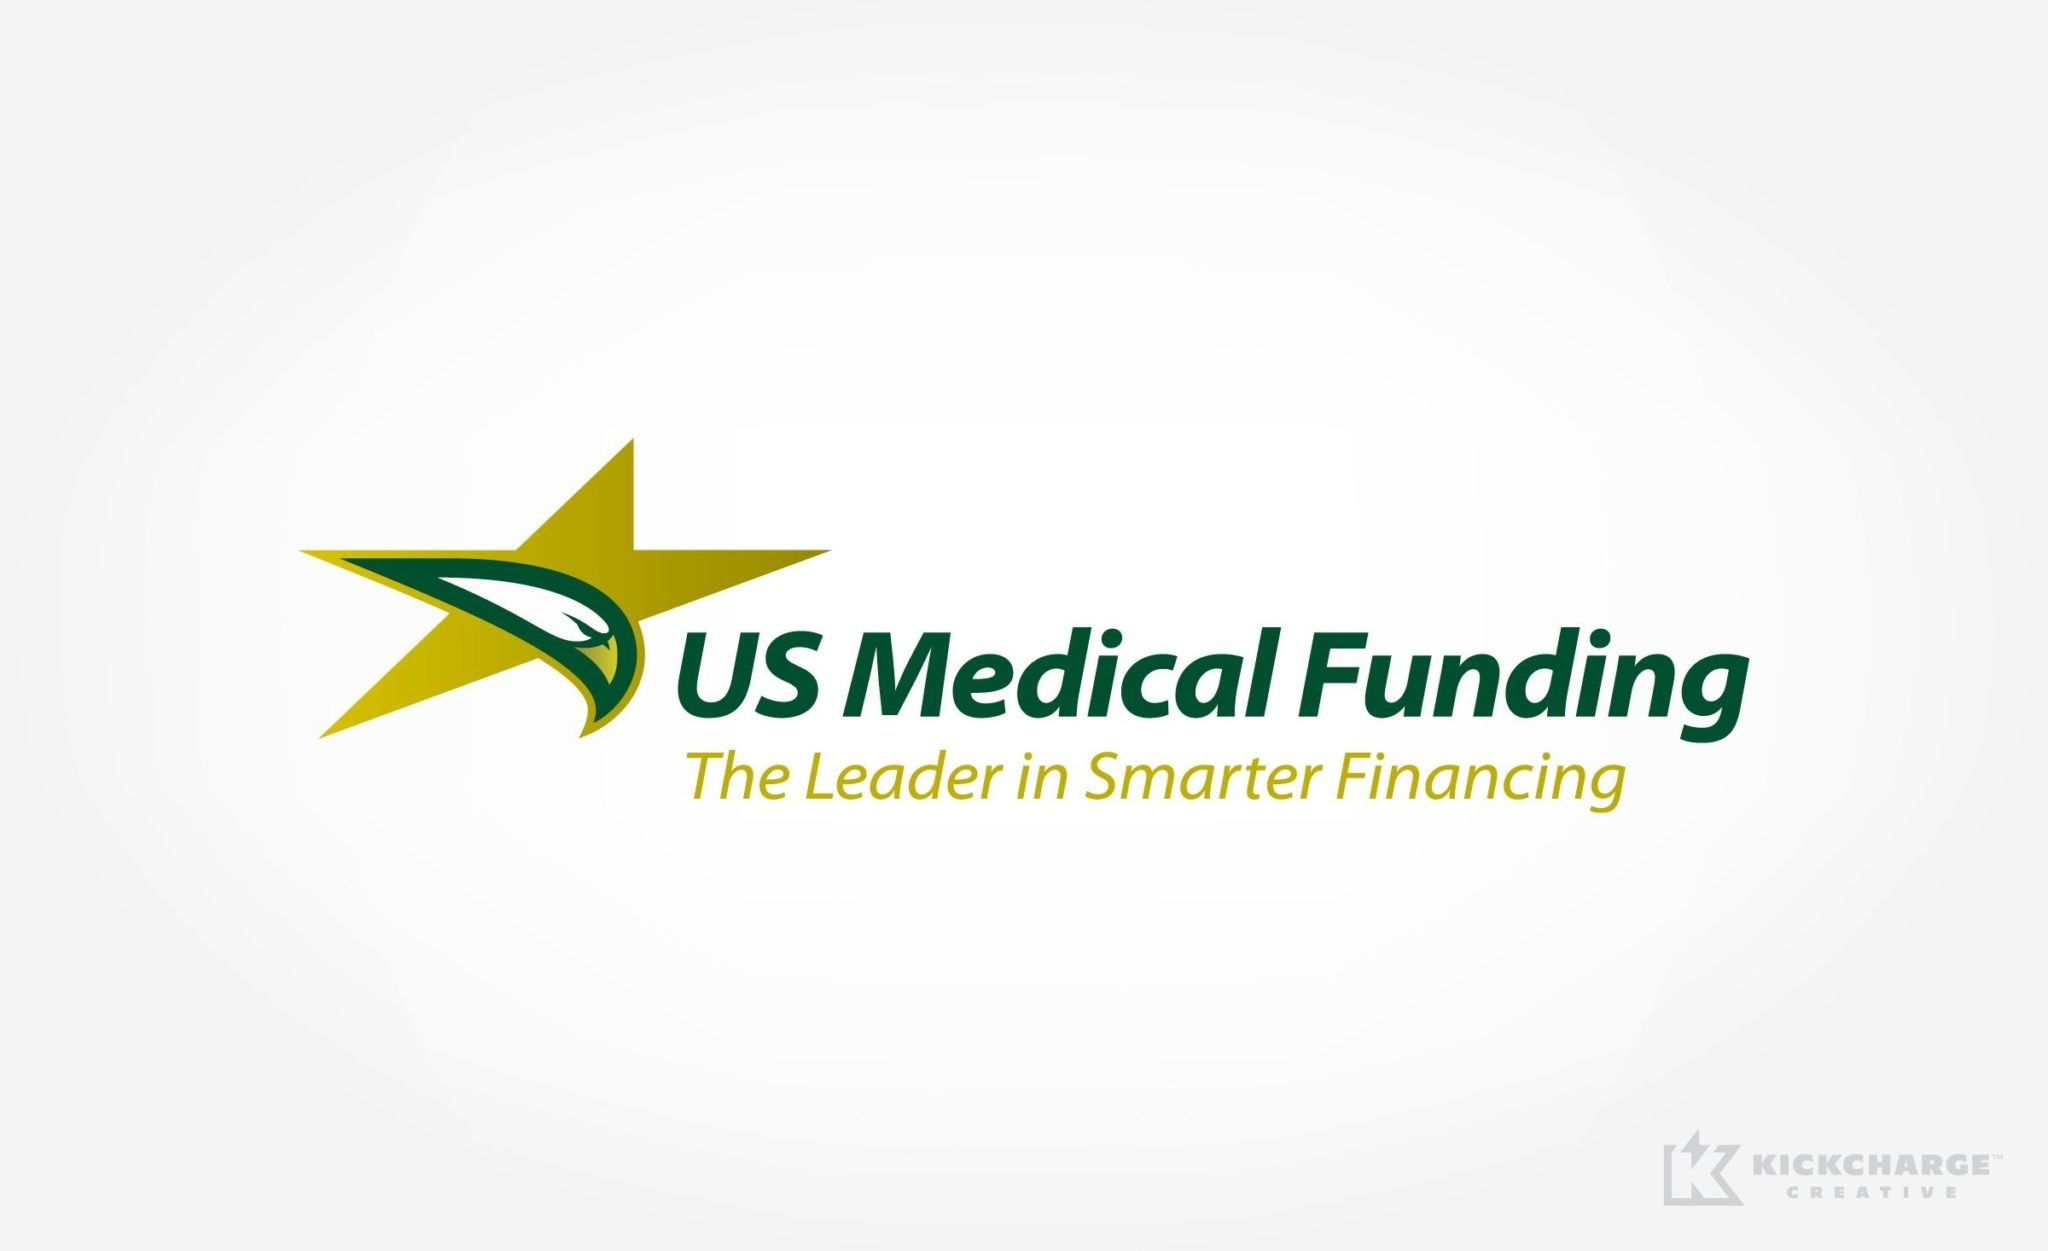 US Medical Funding